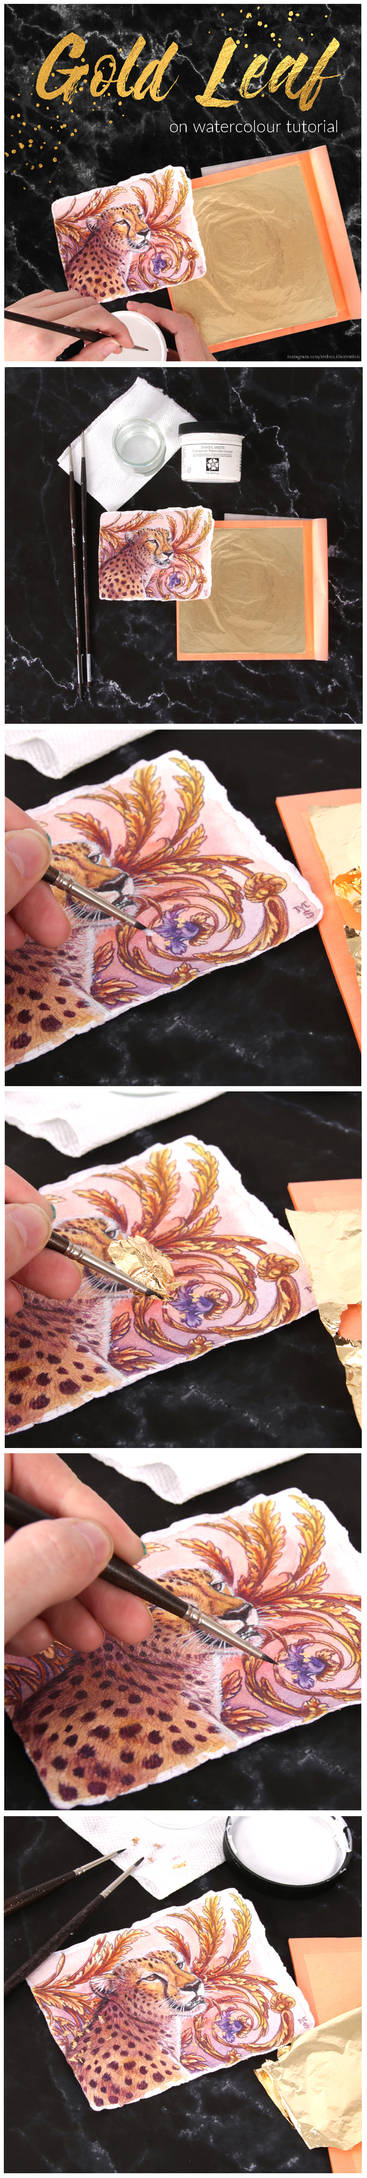 Goldleaf on Watercolour Tutorial